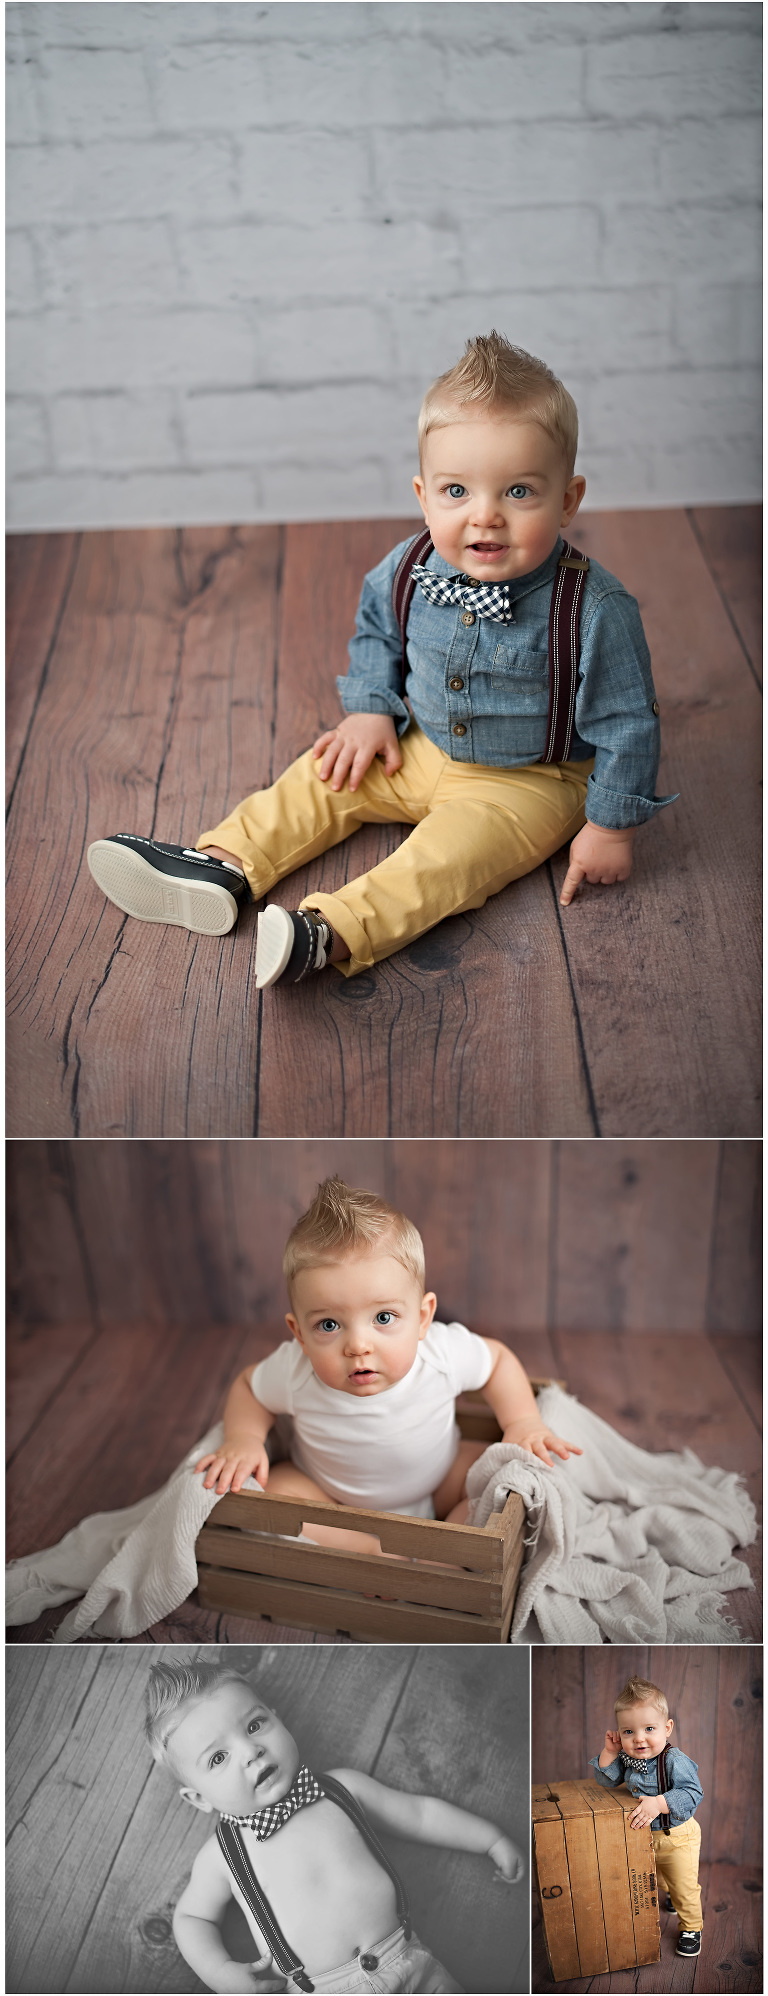 One year old baby boy in suspenders on wood floor with white brick backdrop